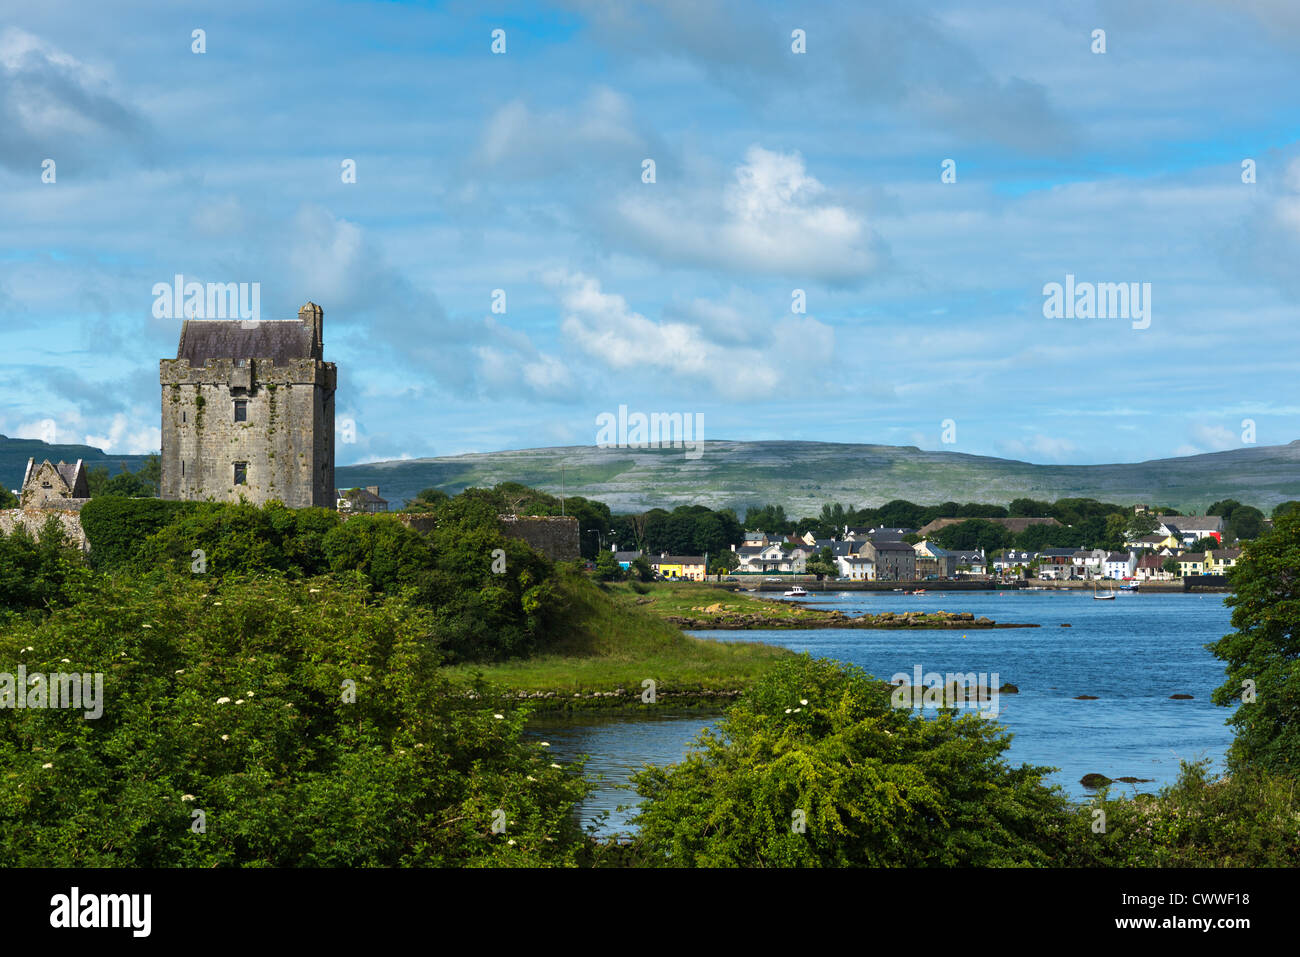 Dunguaire Castle with Kinvara village, County Galway, Ireland. - Stock Image